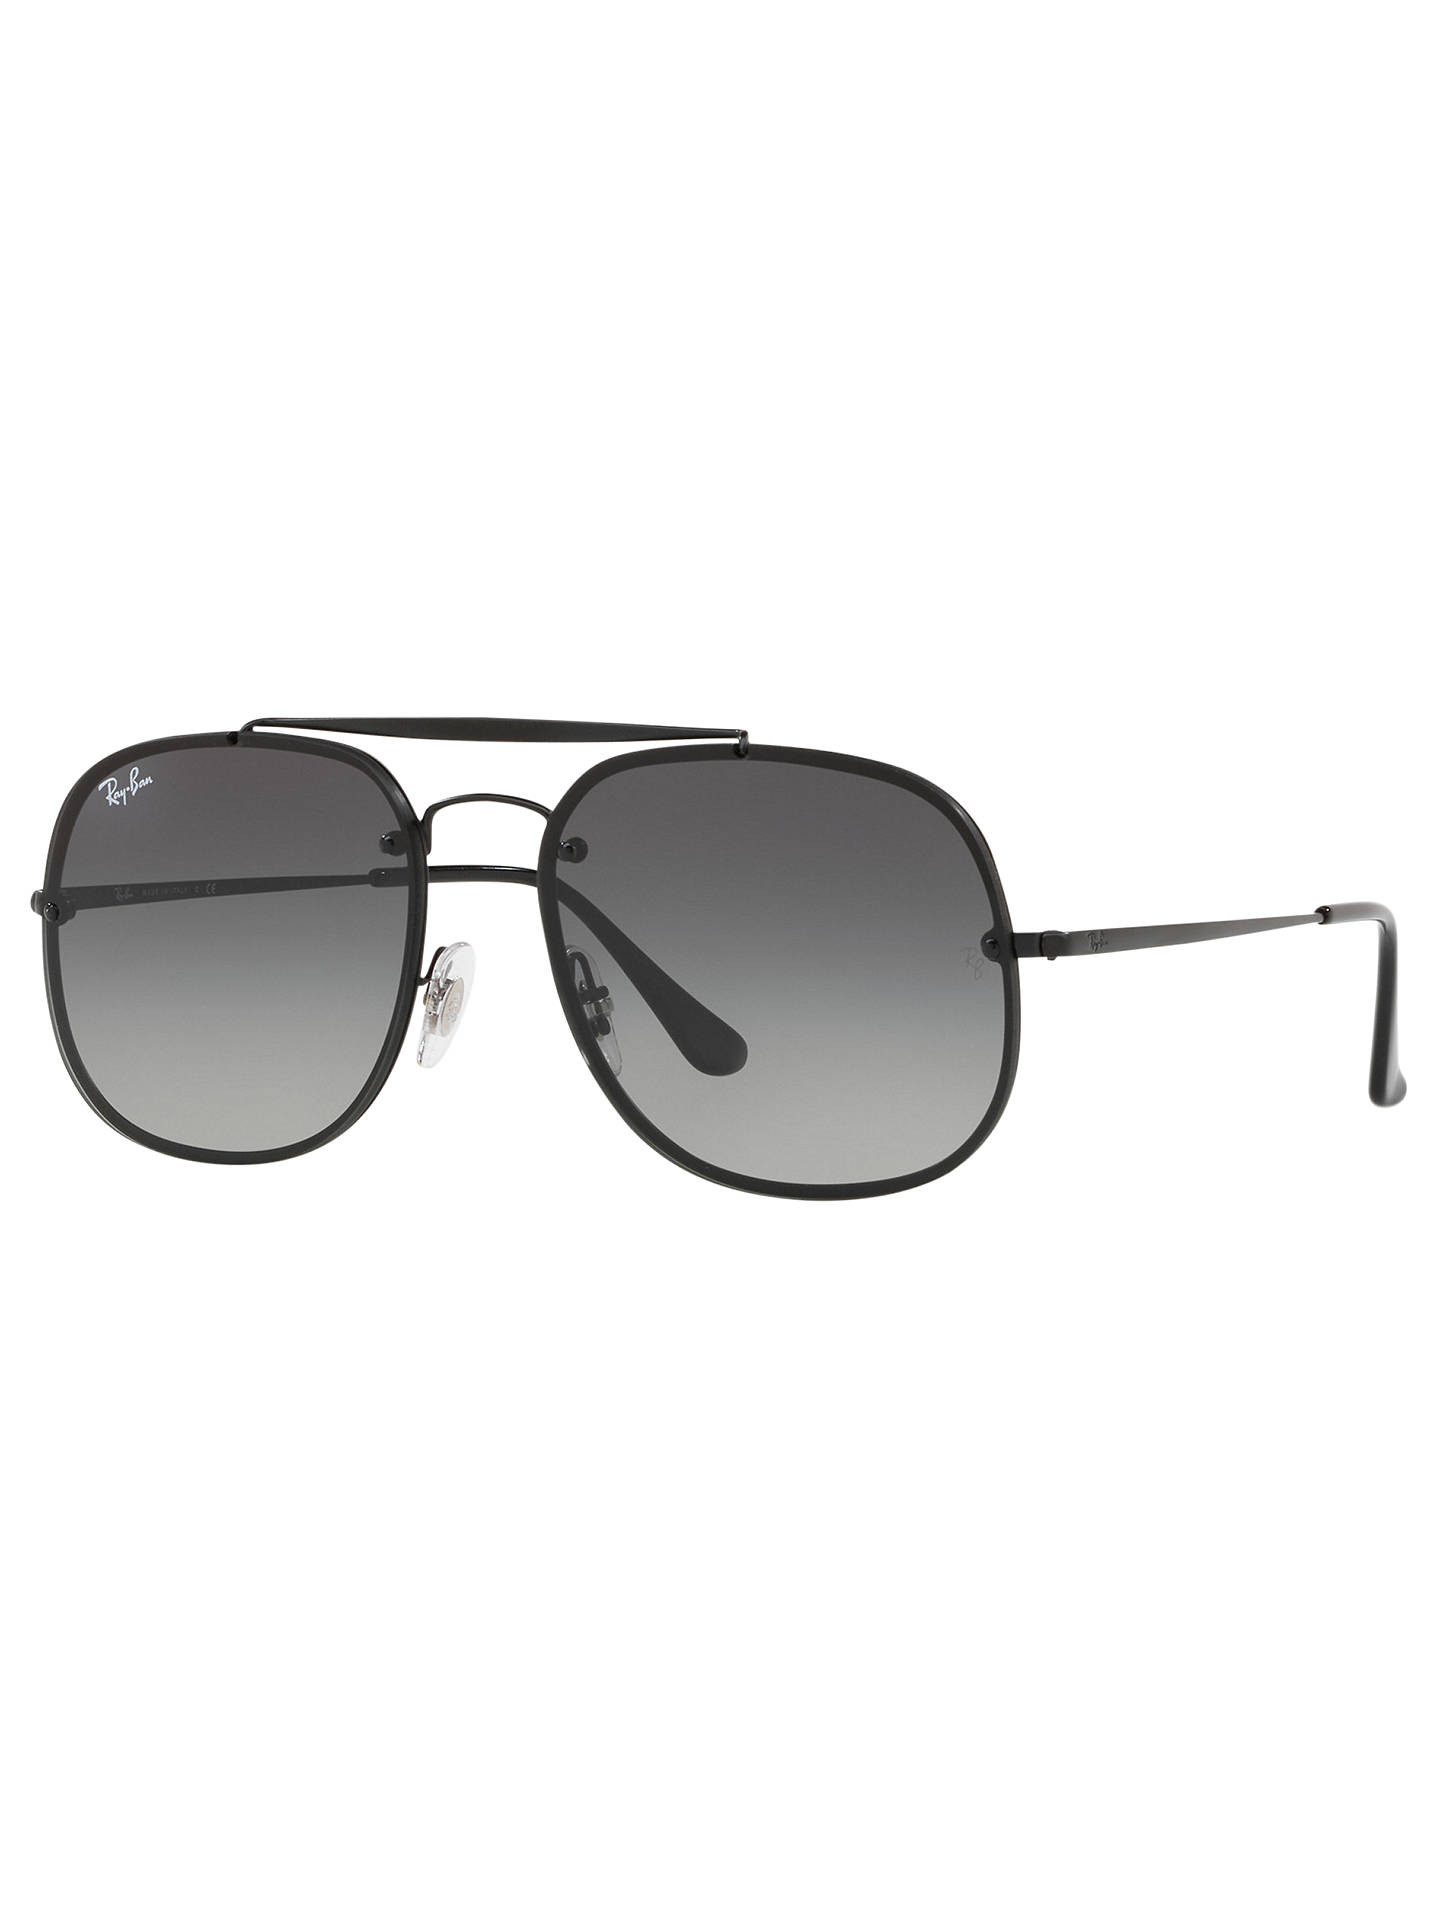 BuyRay-Ban RB3583N Unisex Blaze General Square Sunglasses, Black Grey  Gradient Online at ... e1b0511a36e9